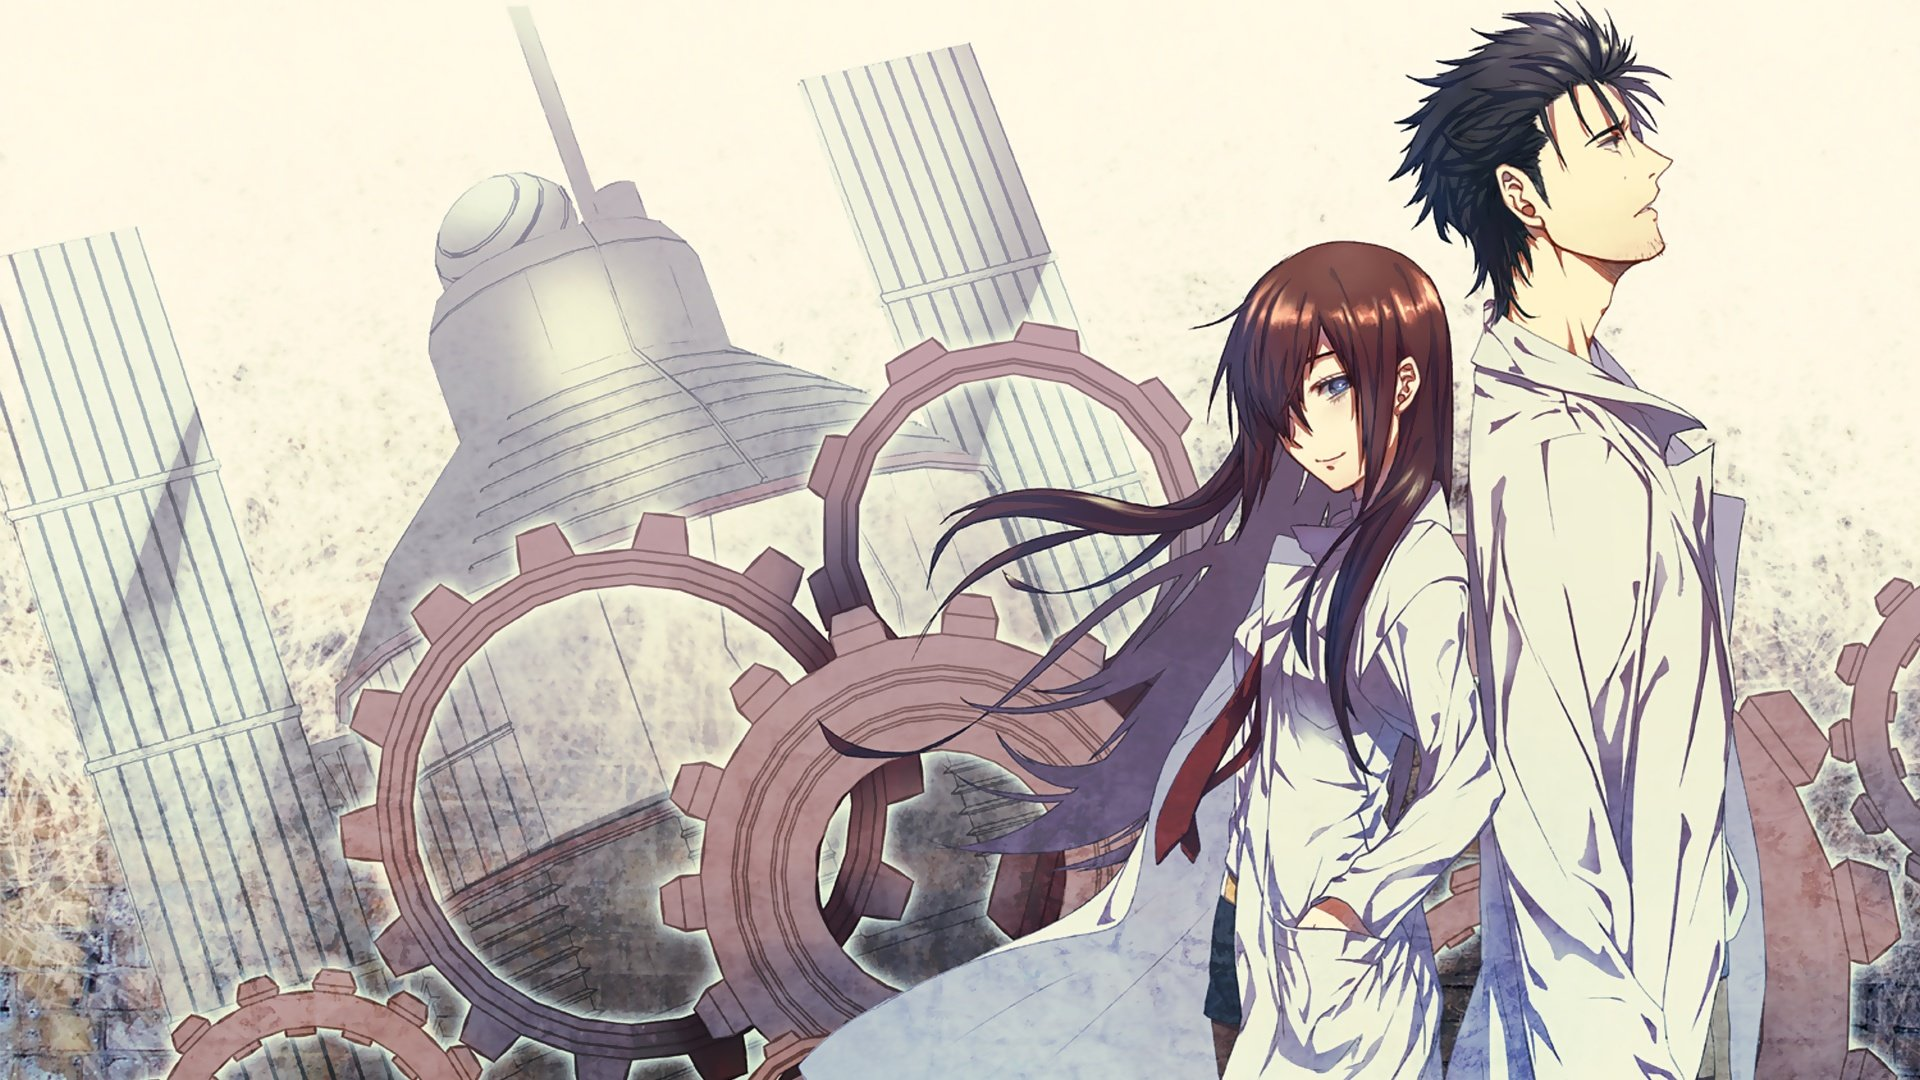 Free Kurisu Makise high quality wallpaper ID:315783 for full hd 1920x1080 desktop